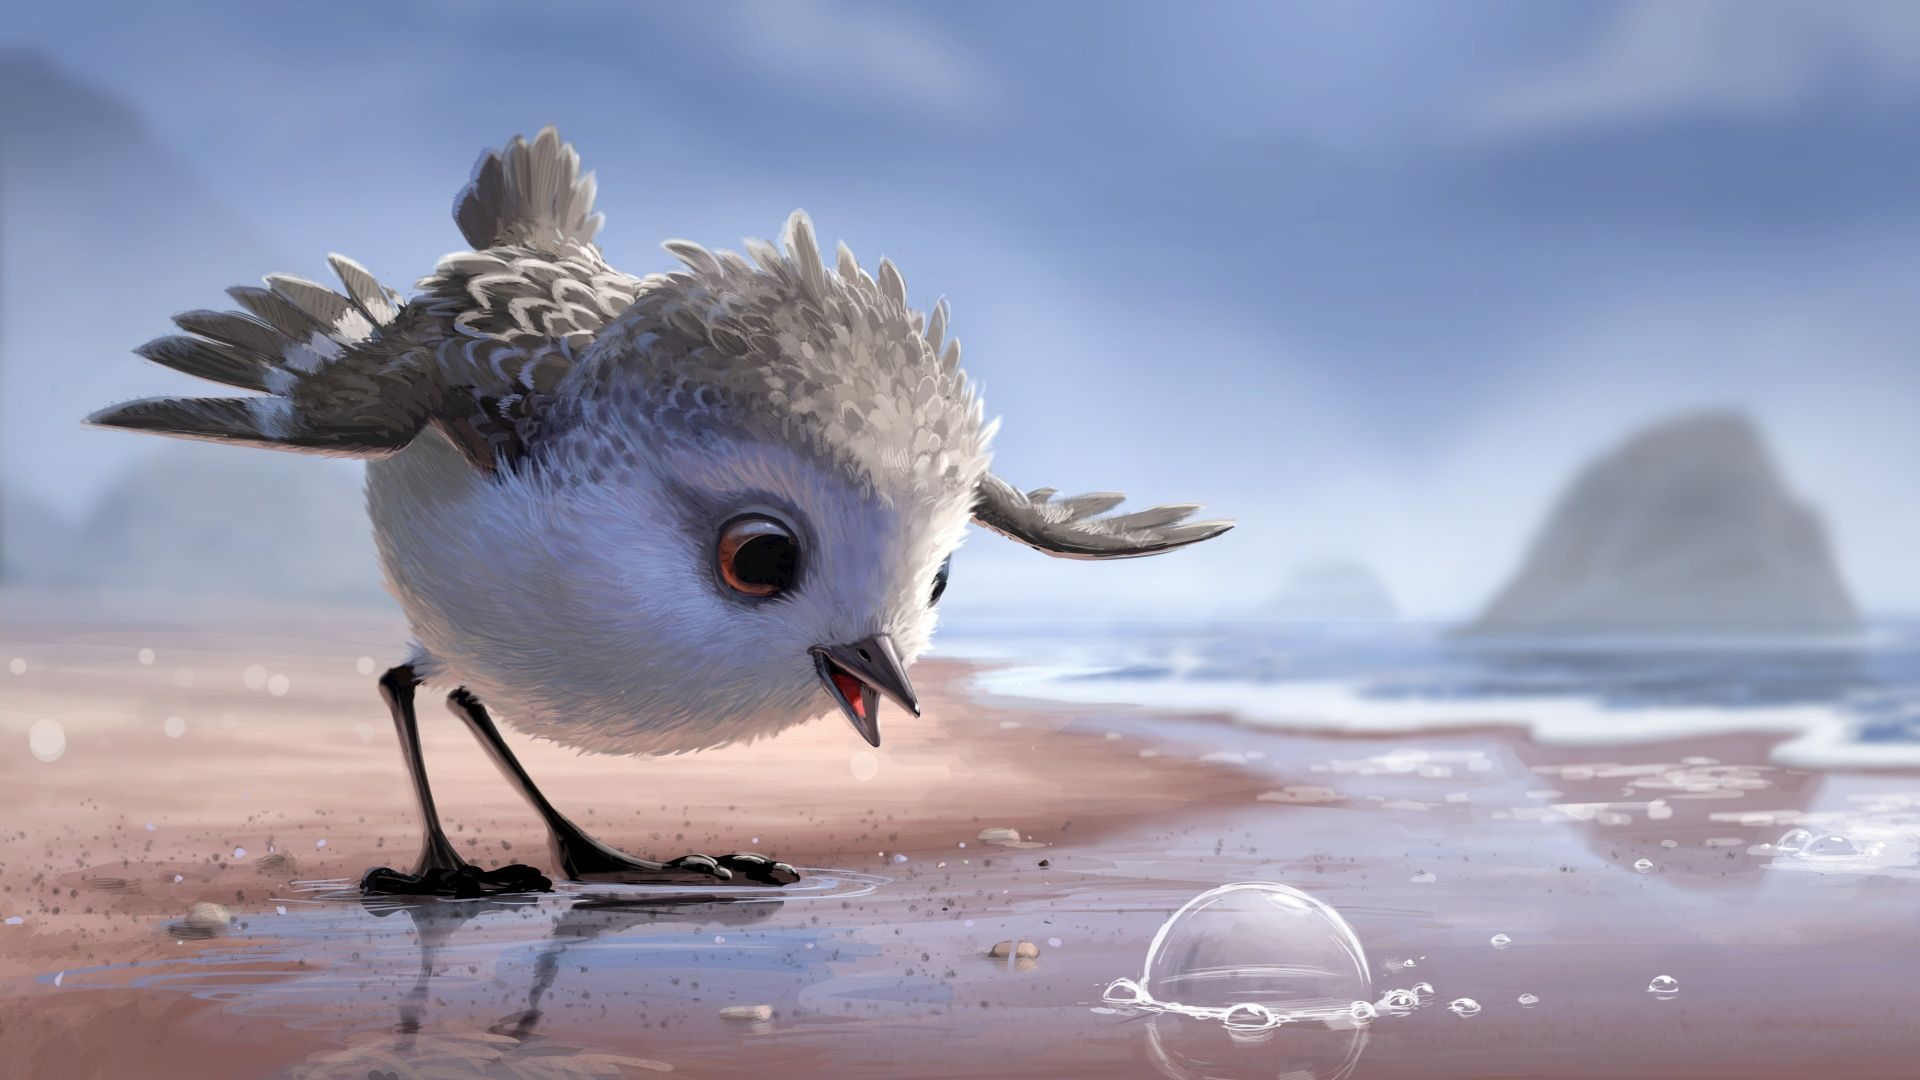 pixar movie piper art hd wallpaper [1920 x 1080] need #iphone #6s